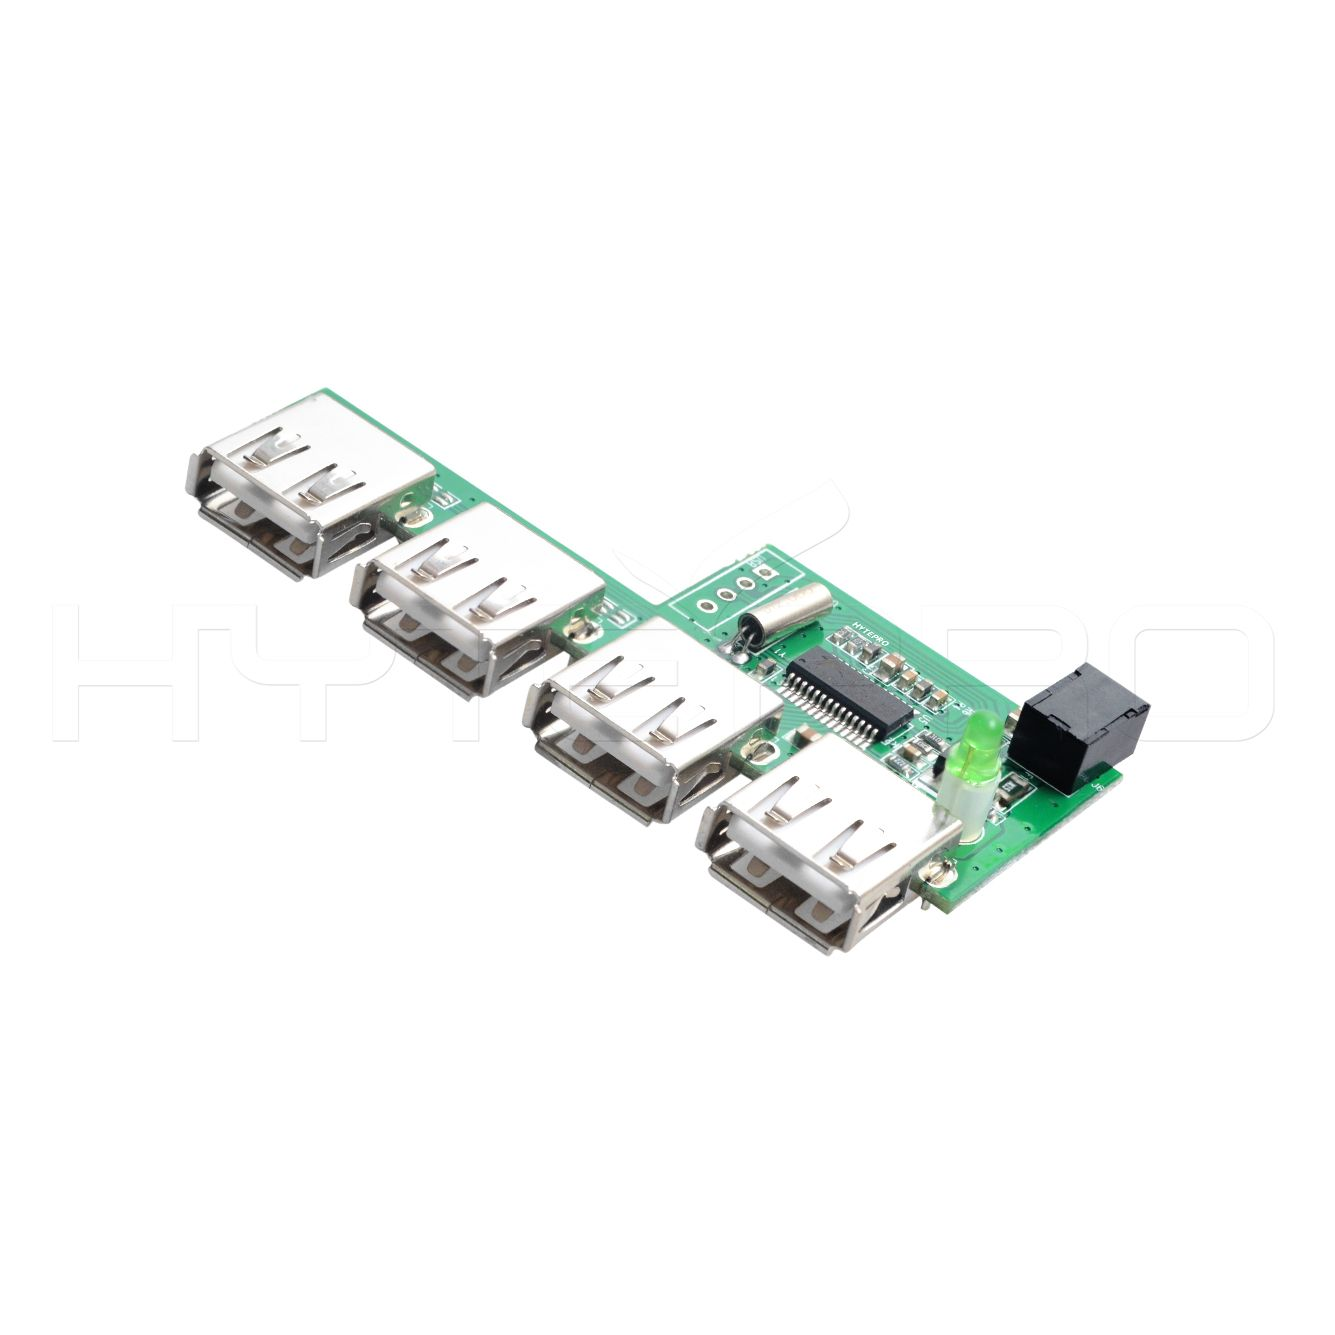 4port Fast Charger Usb 3 0 Power Hub Pcb Assembly H26 Usb Charger Pcb Design